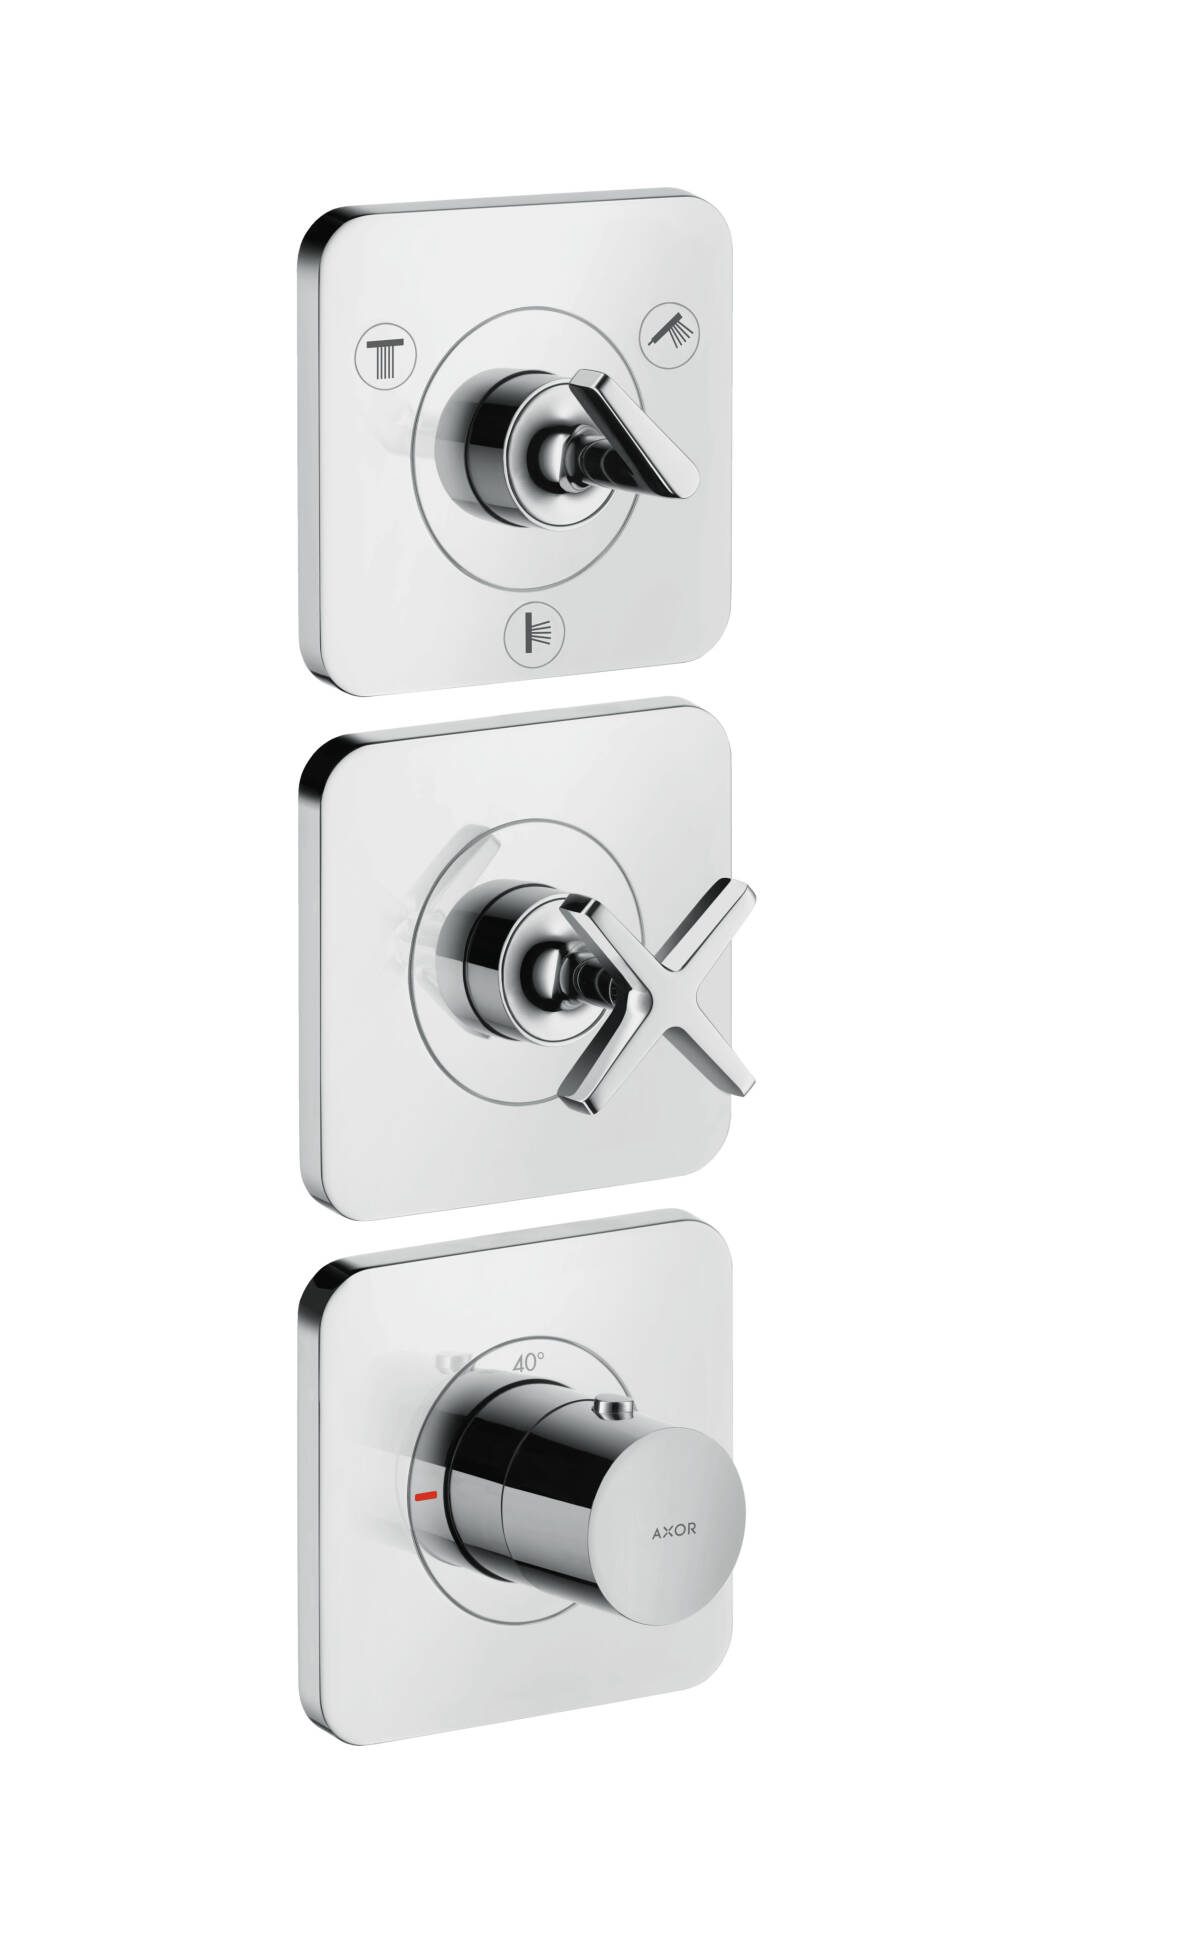 Thermostatic module 380/120 for concealed installation for 3 functions with escutcheons, Chrome, 36704001